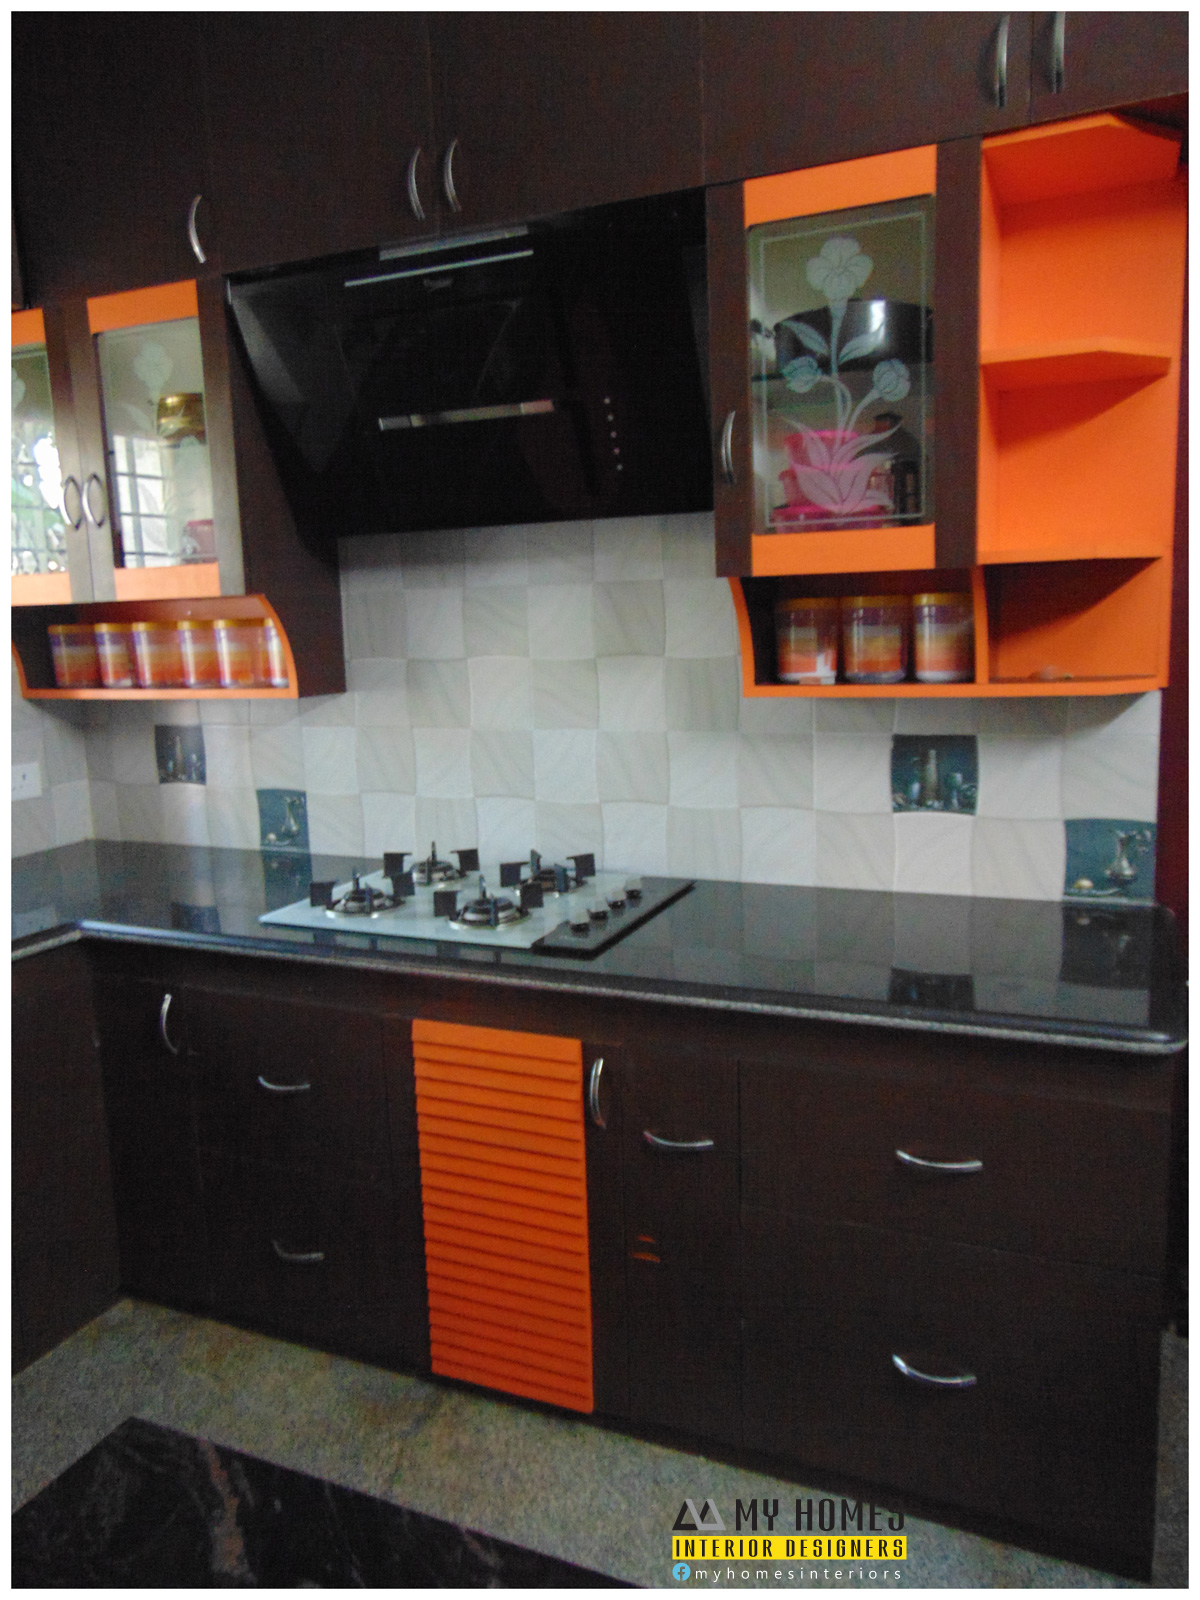 Kerala interior design ideas from designing company thrissur for Kitchen designs kerala